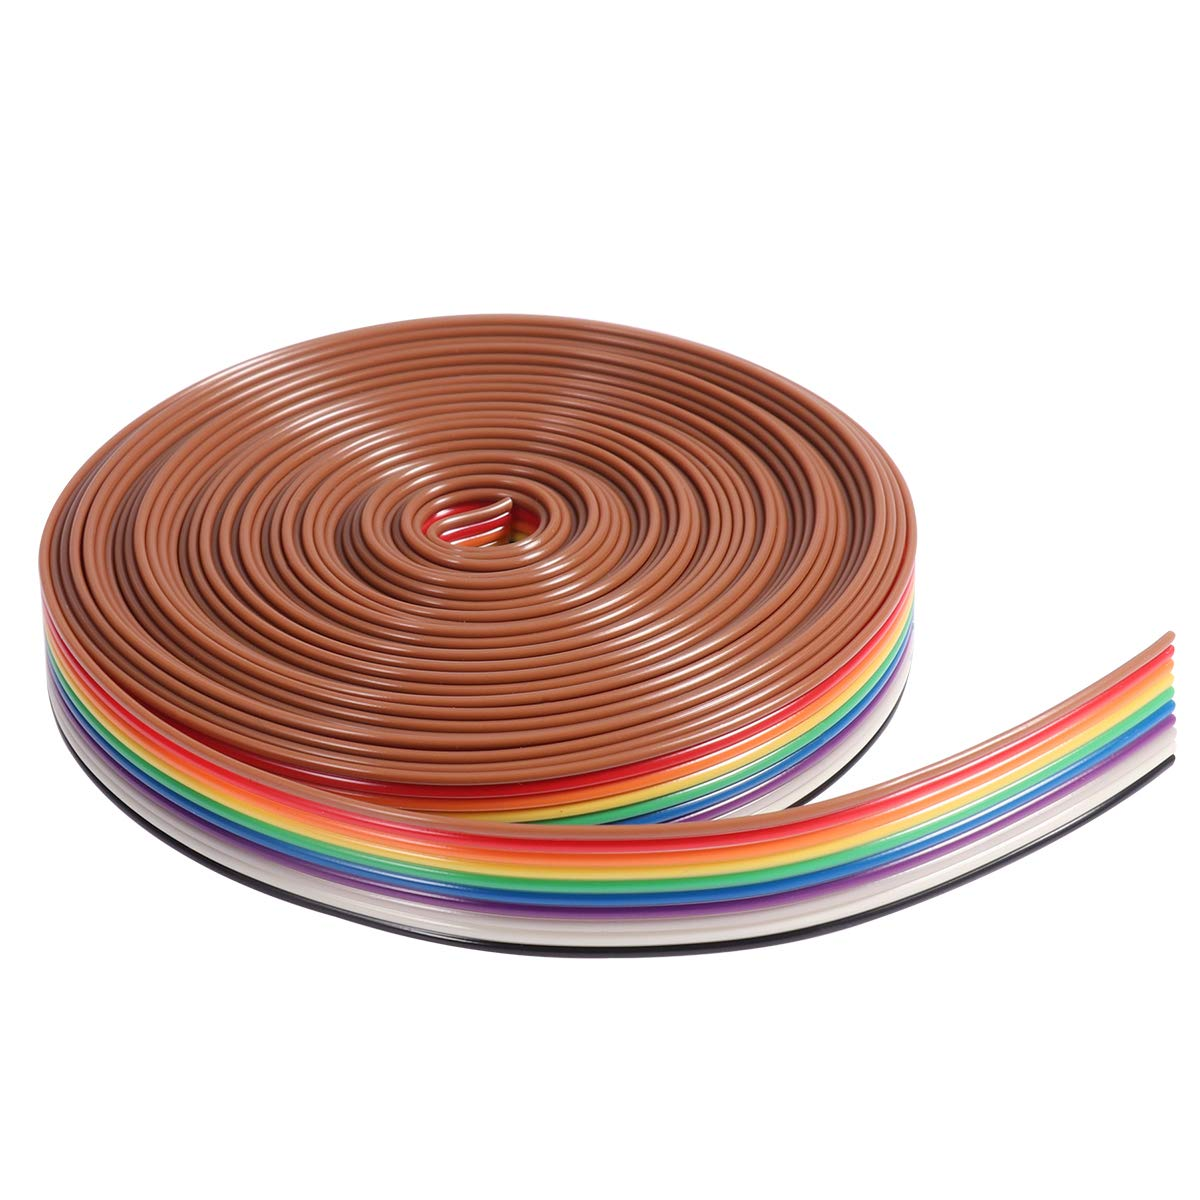 Ueetek 5M 10 Pin Rainbow Ribbon Cable Wire